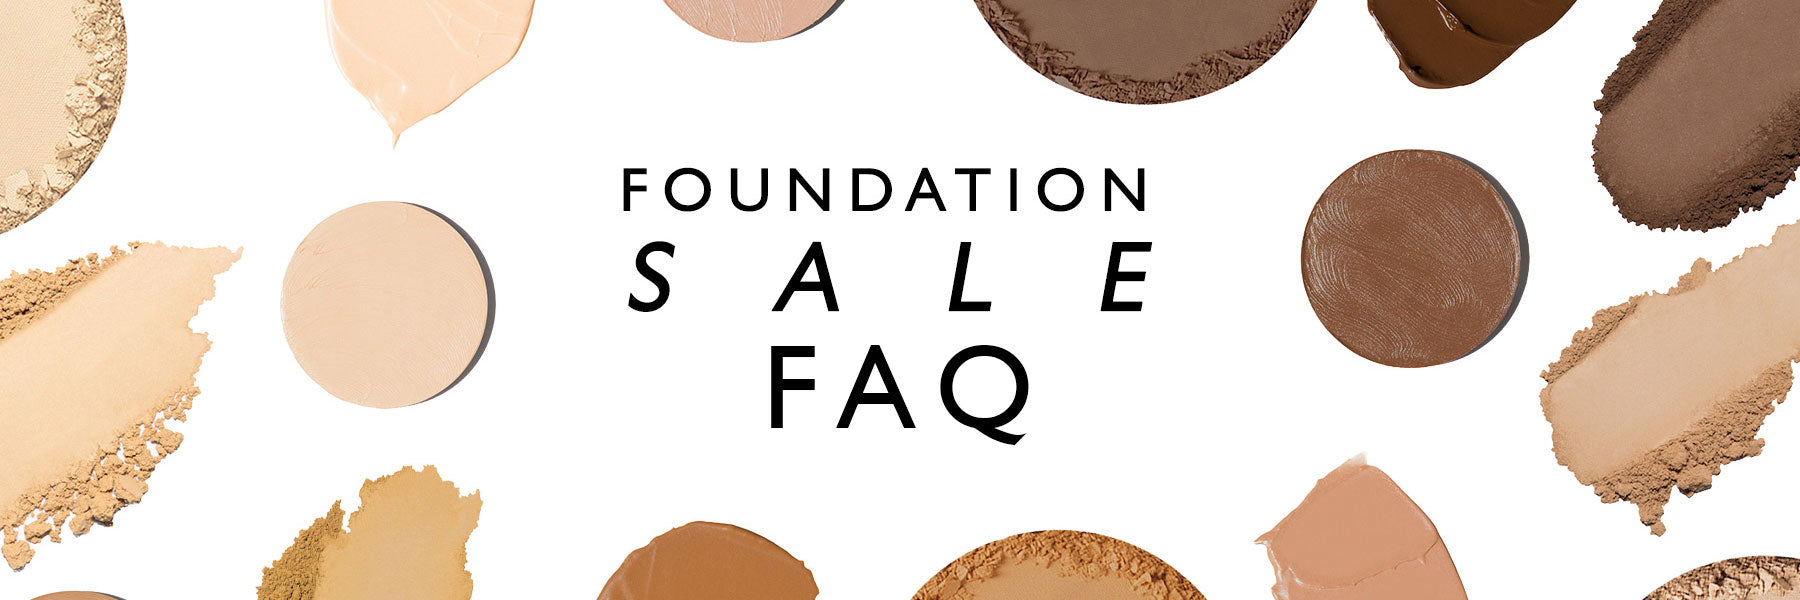 Foundation Sale Frequently Asked Questions and Help